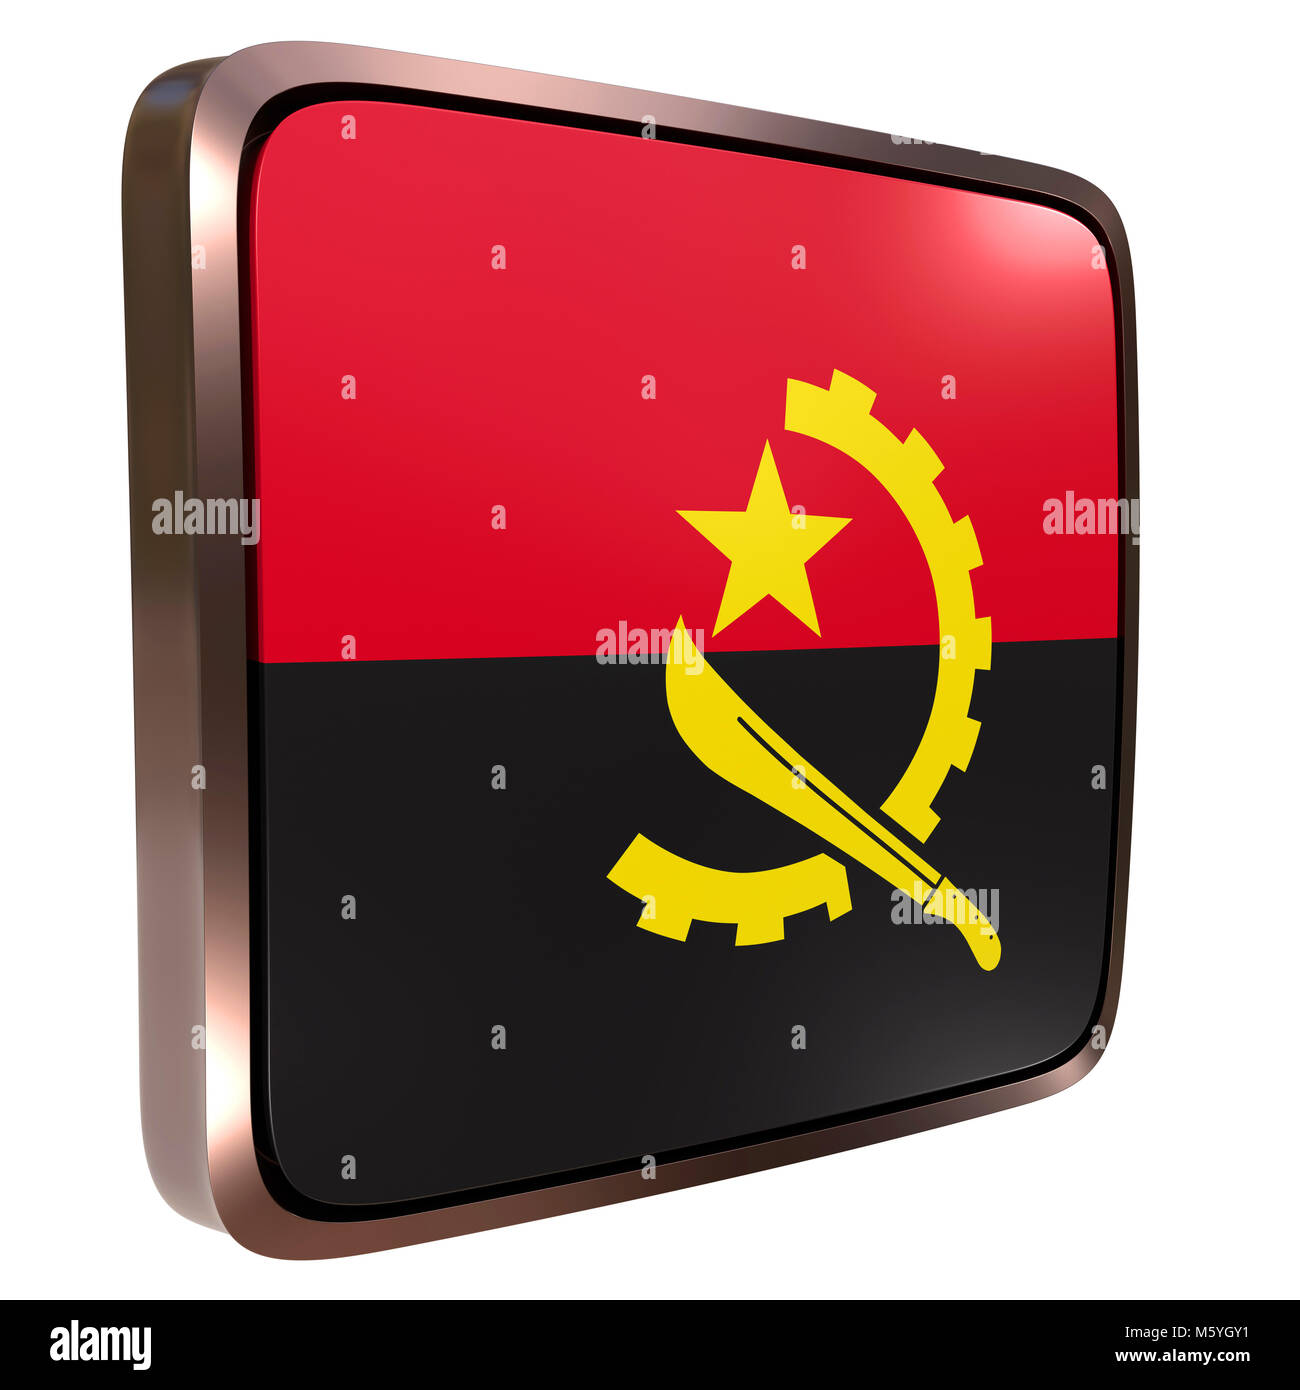 3d rendering of an Angola flag icon with a metallic frame. Isolated on white background. - Stock Image